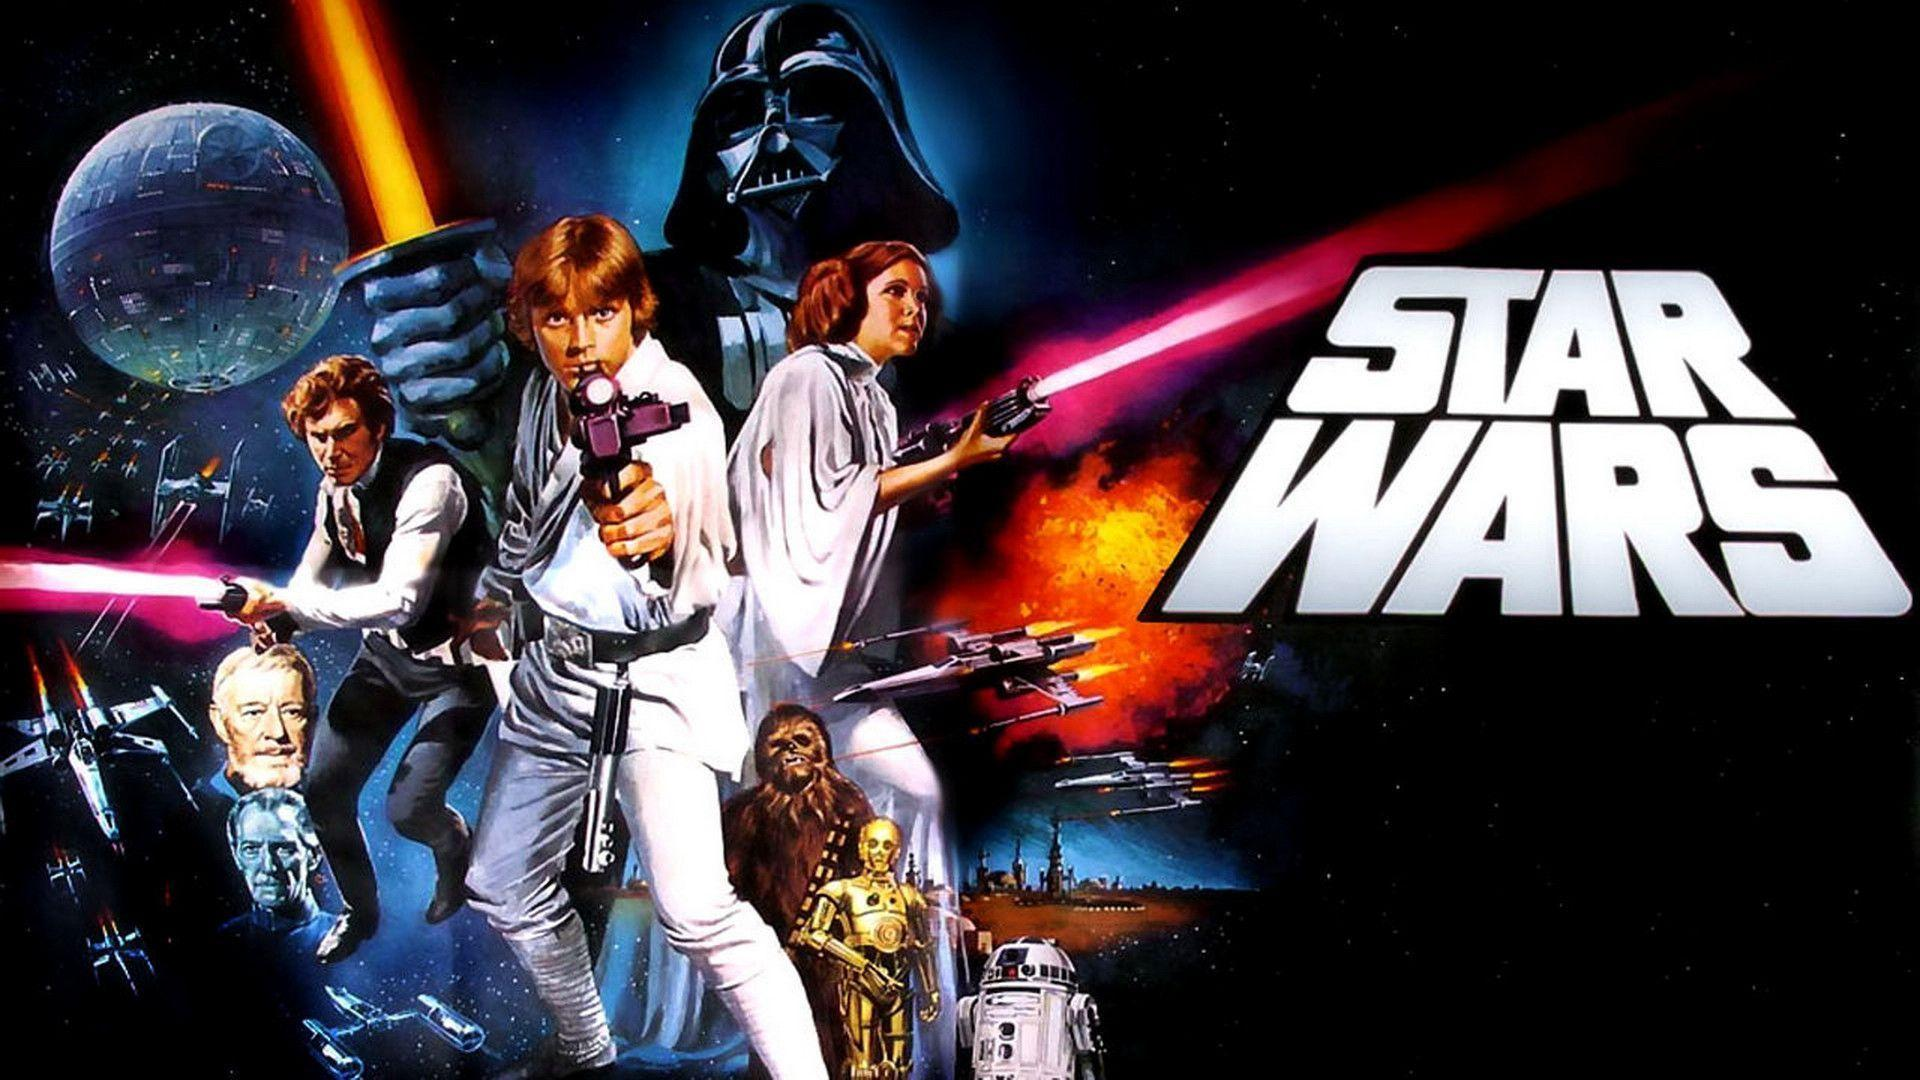 Star Wars Episode IV A New Hope Wallpaper, HD 1080p 6